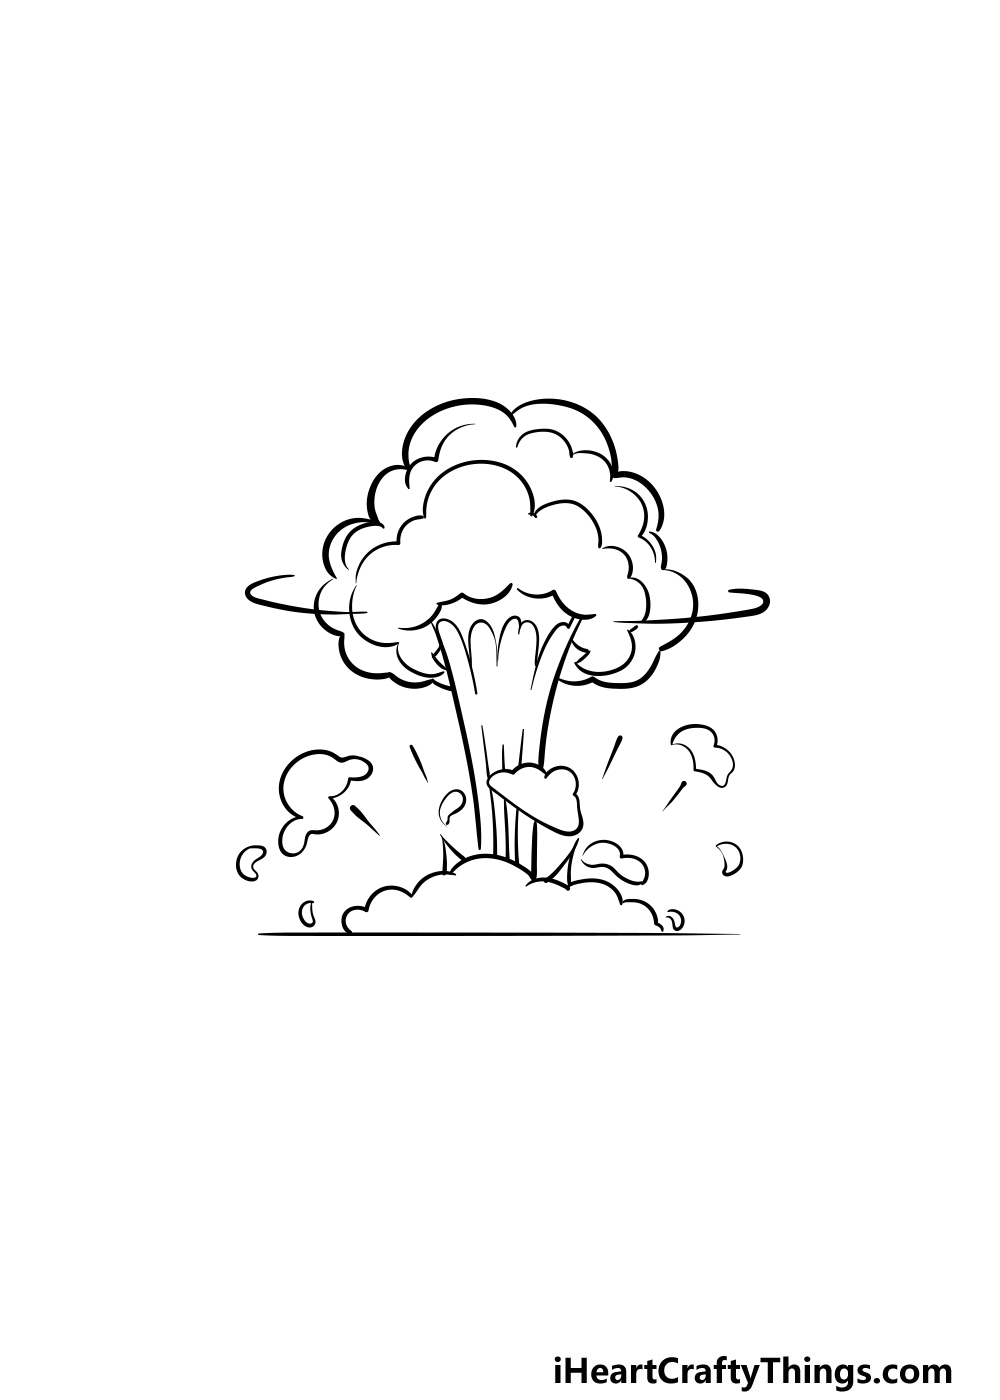 drawing an explosion step 6